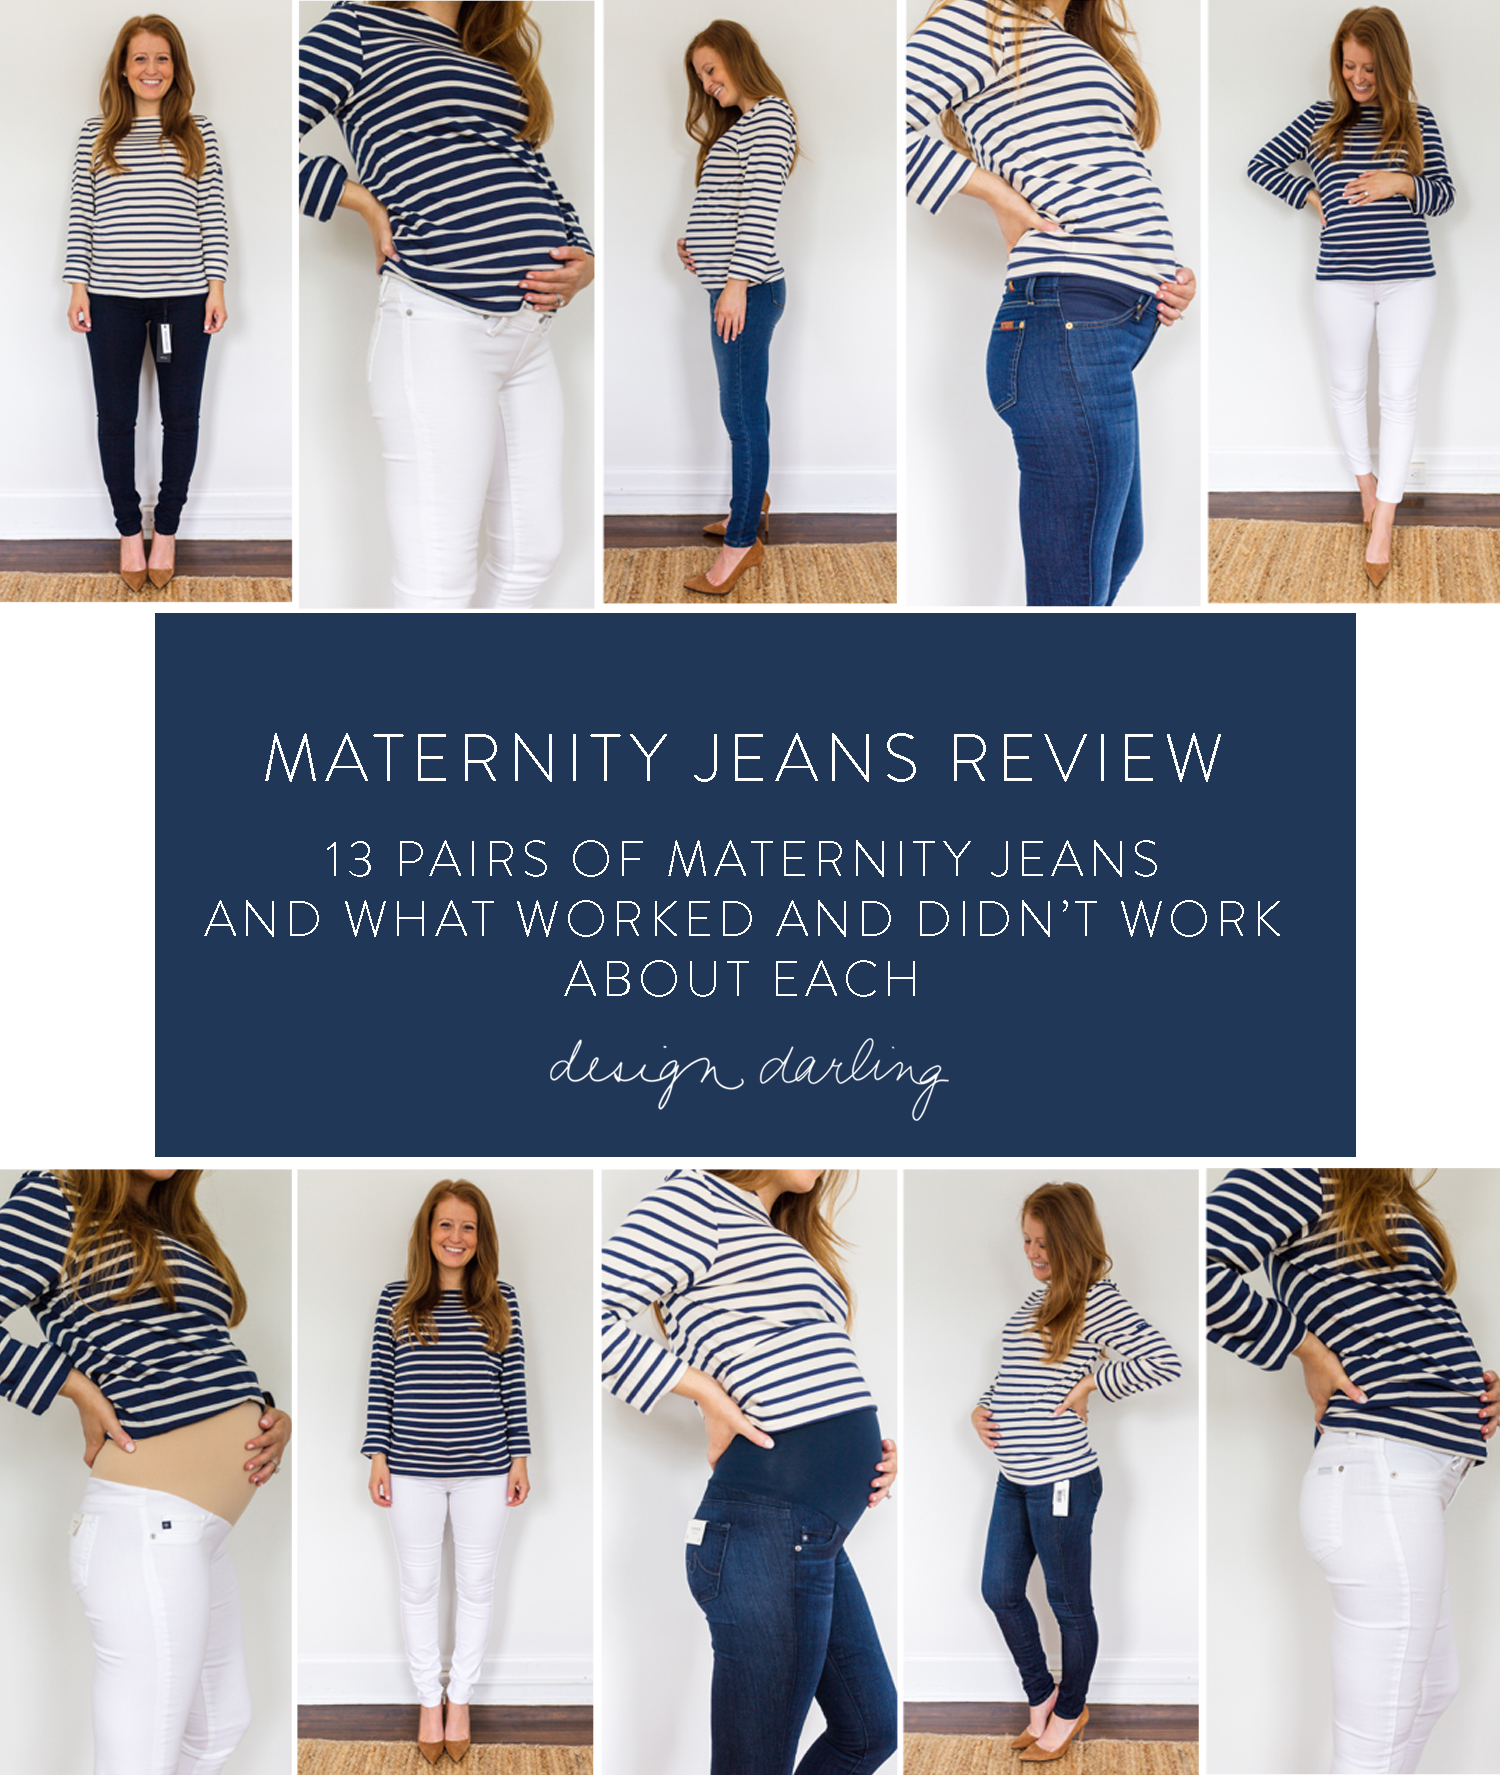 5eb5f0ee9e5d0b MATERNITY JEANS REVIEW: 13 PAIRS OF MATERNITY JEANS AND WHAT WORKED AND  DIDN'T WORK ABOUT EACH